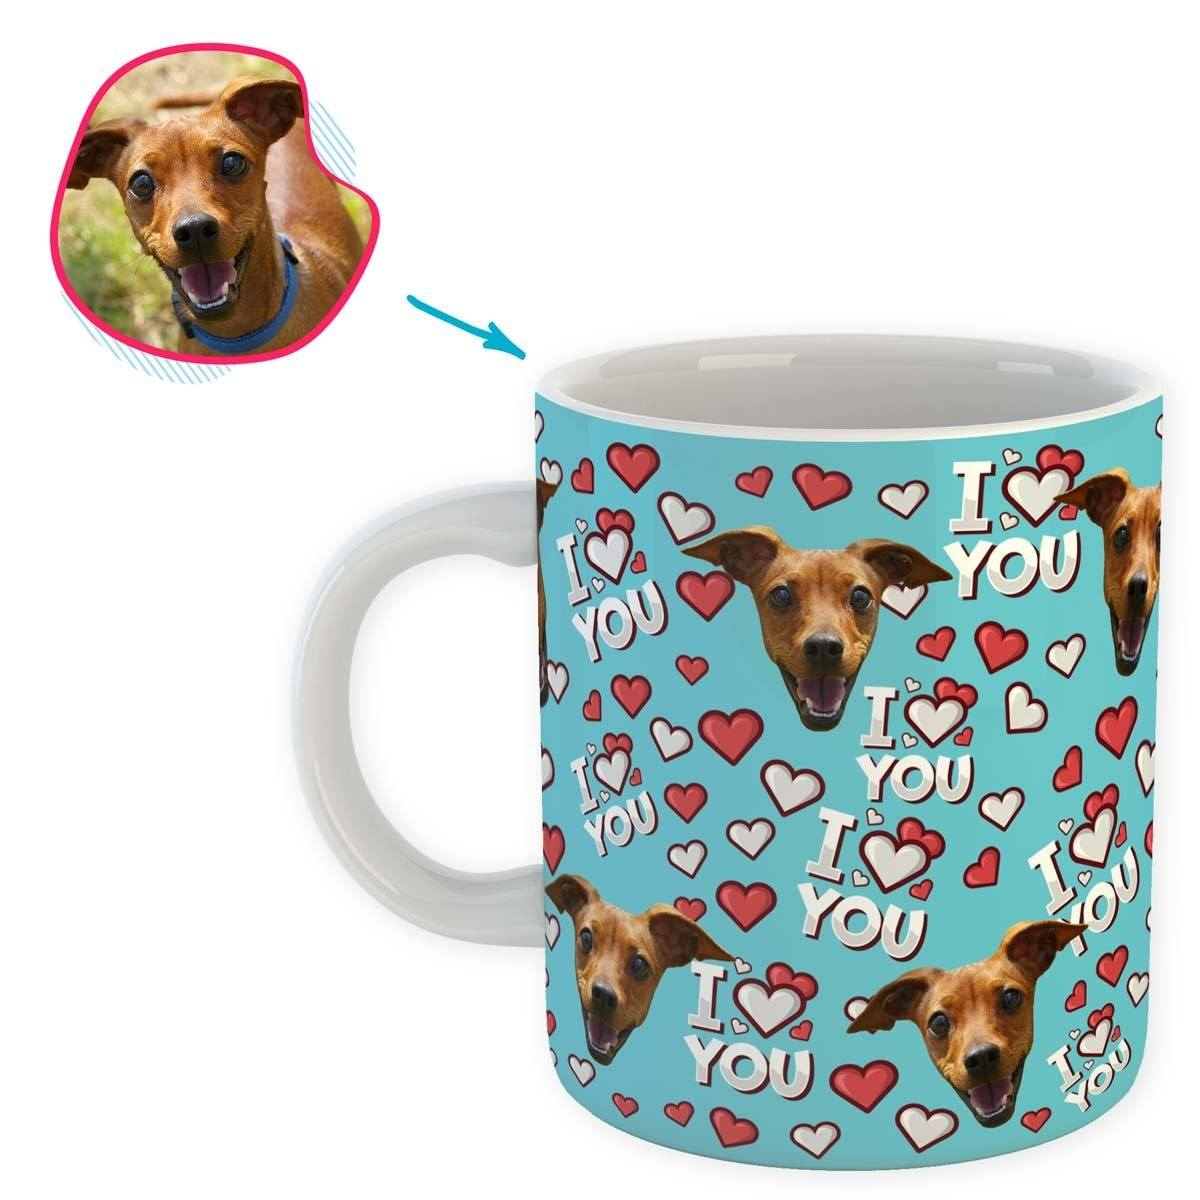 blue I Love You mug personalized with photo of face printed on it